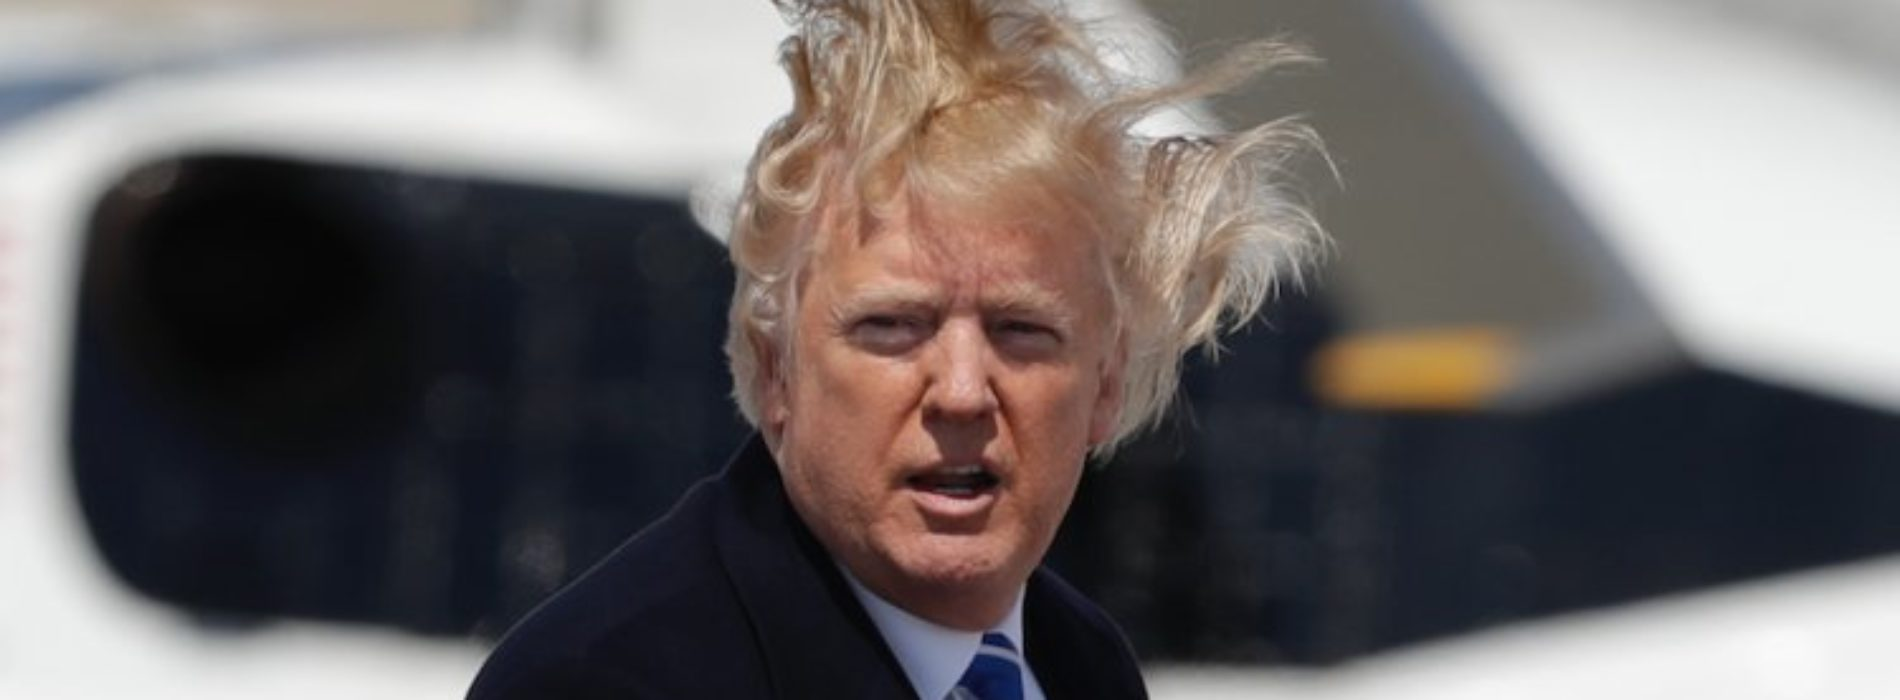 Trump insists wind turbine noise causes cancer